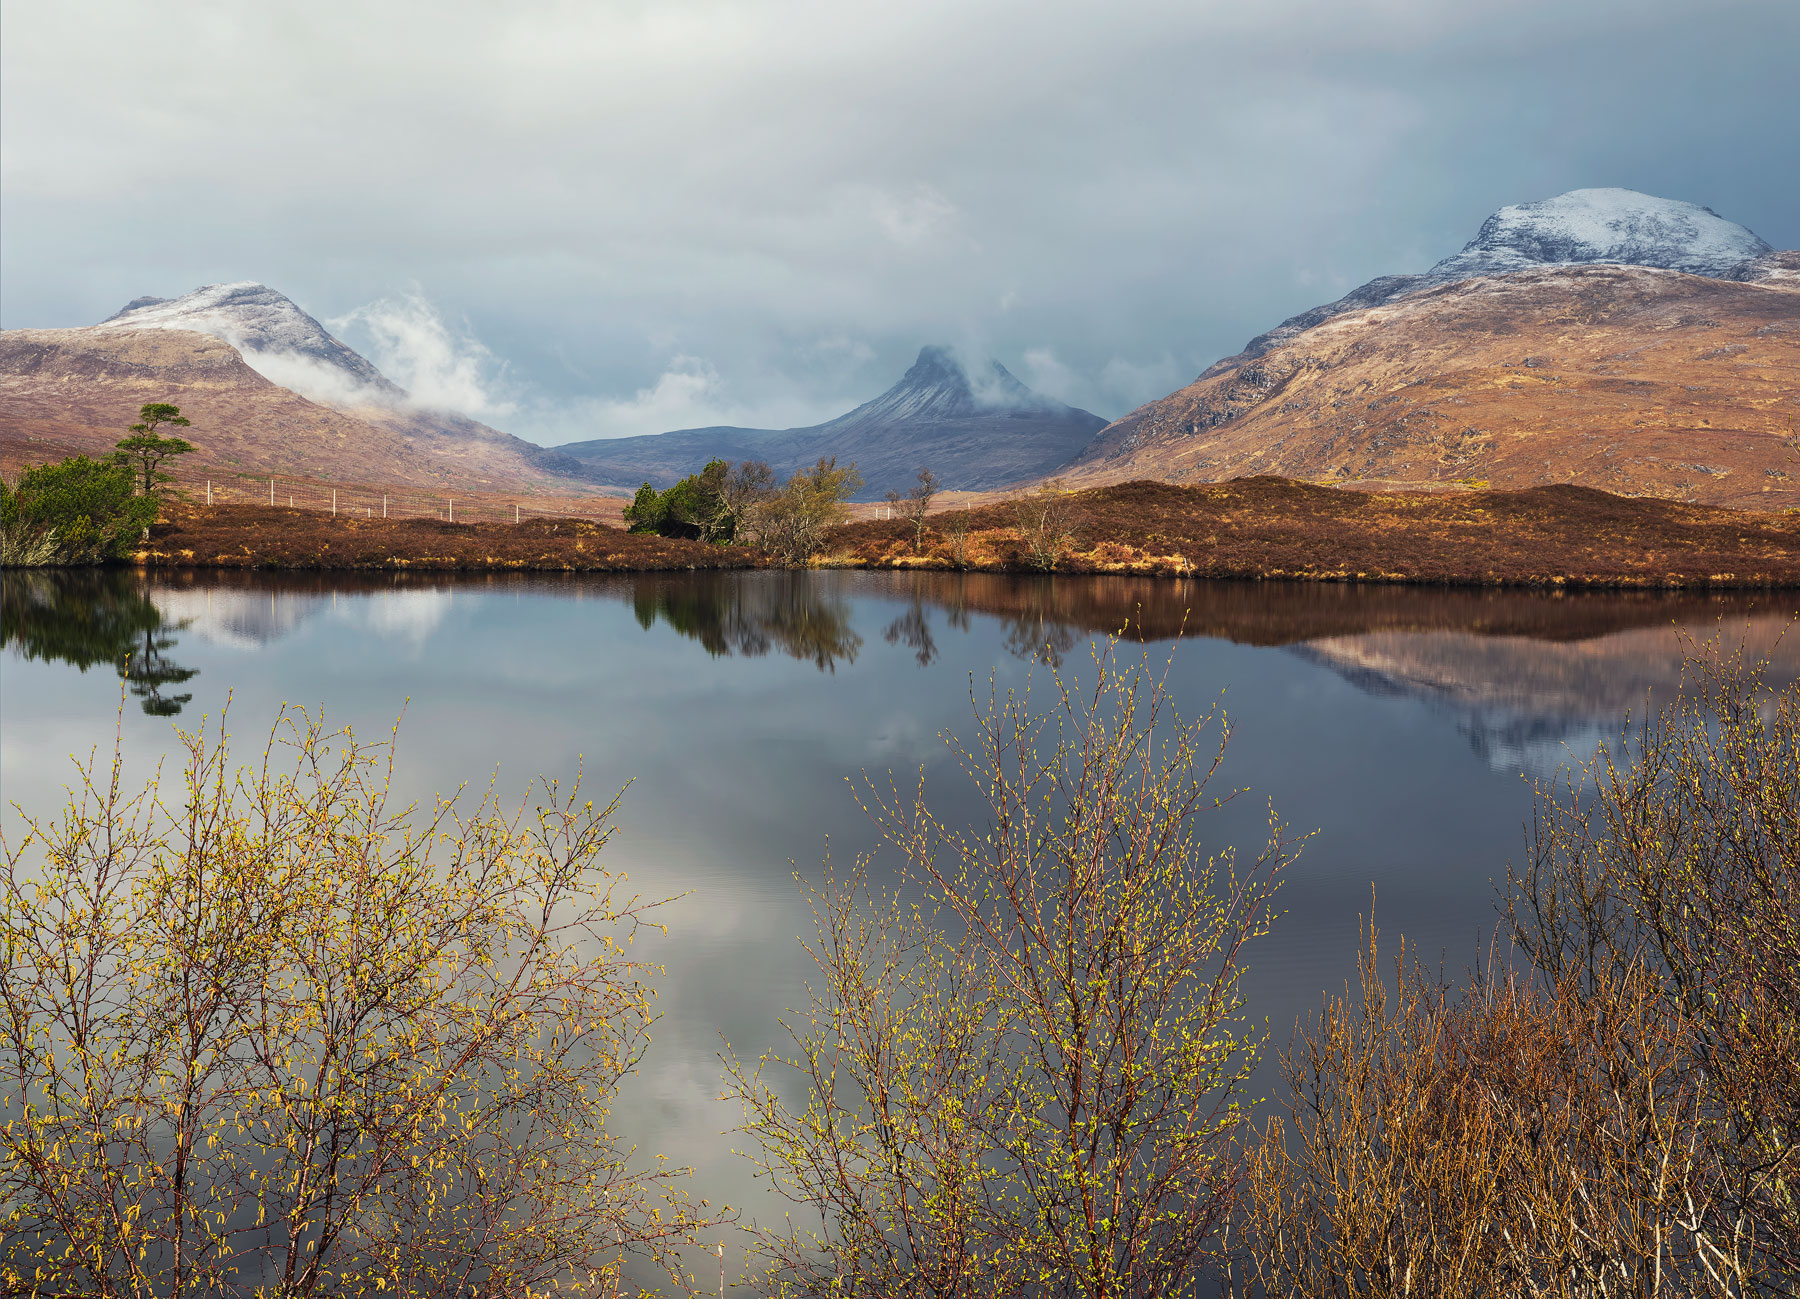 Snow capped Coigach ridge, Cul Mor and distinctive Stac Pollaidh reflect in Loch Culdromman bordered by new growth Birch trees.